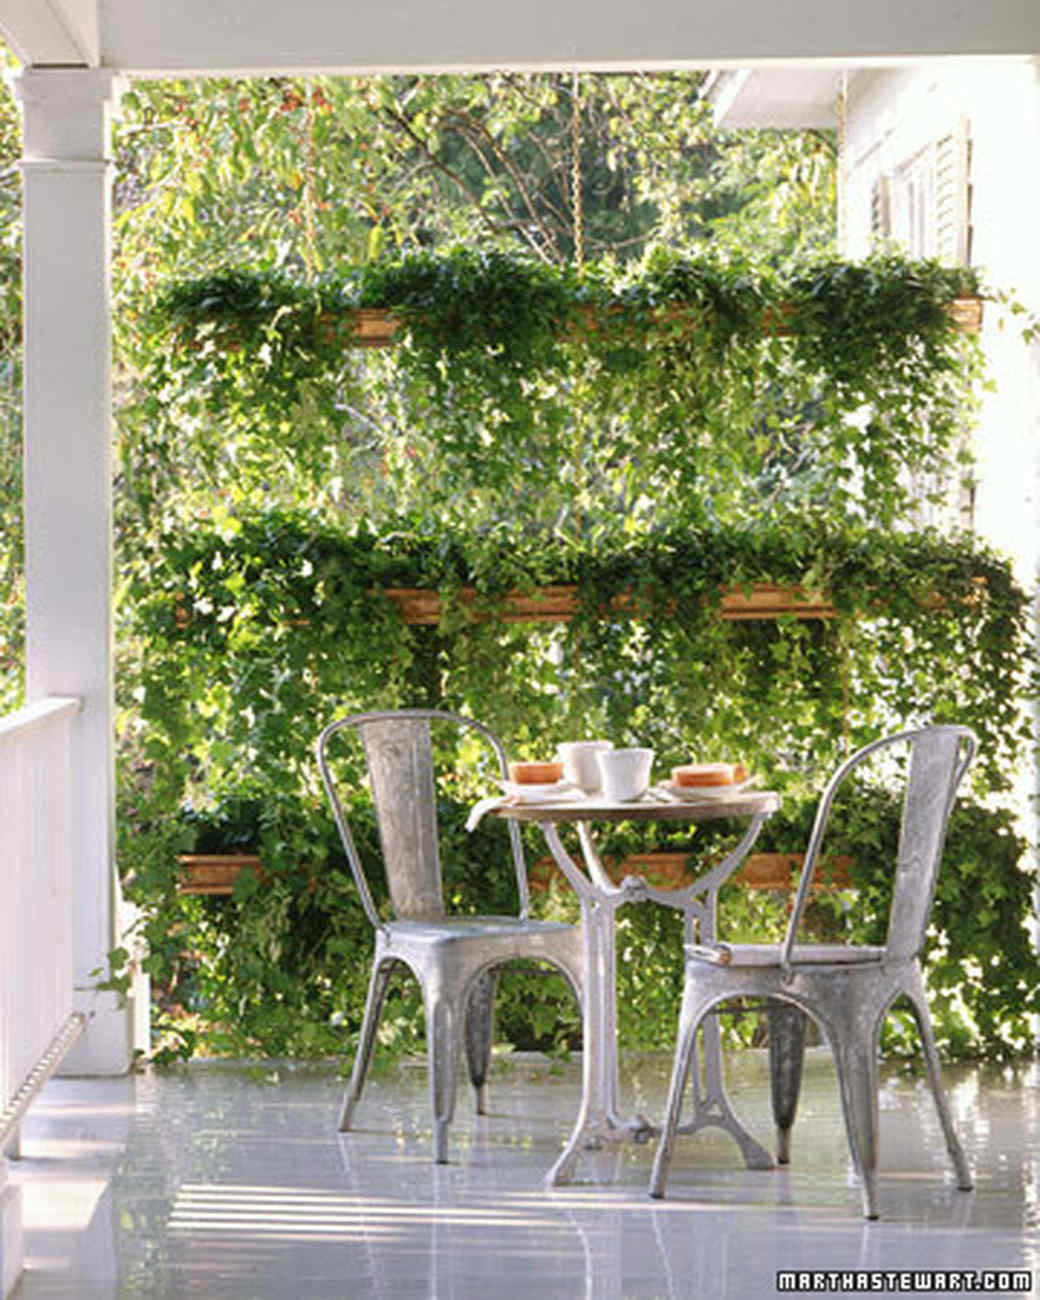 Affordable Patio Privacy Screens That Are Easy To Make  Page 2 of 3